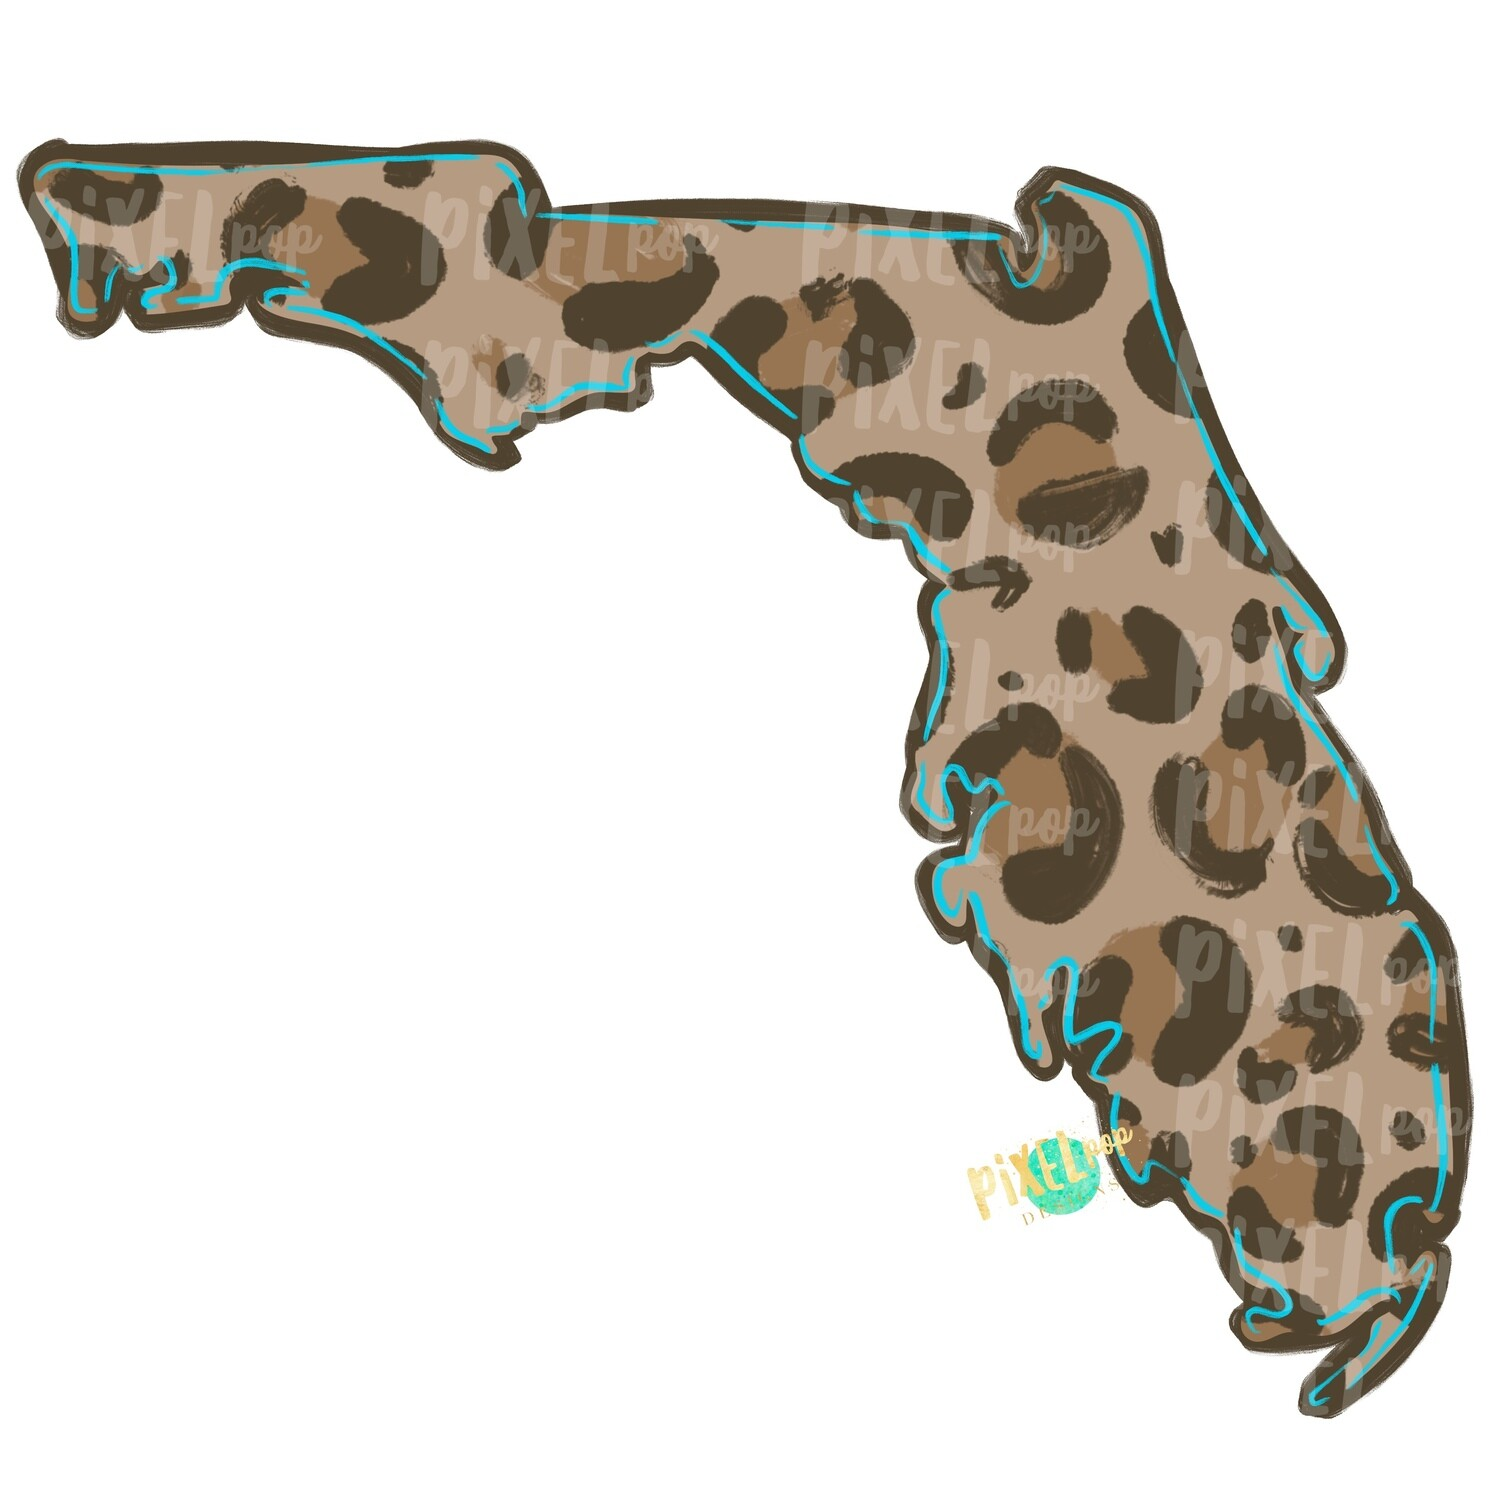 State of Florida Shape Turquoise and Leopard PNG | Florida | Home State | Sublimation Design | Heat Transfer | Digital | Leopard Print